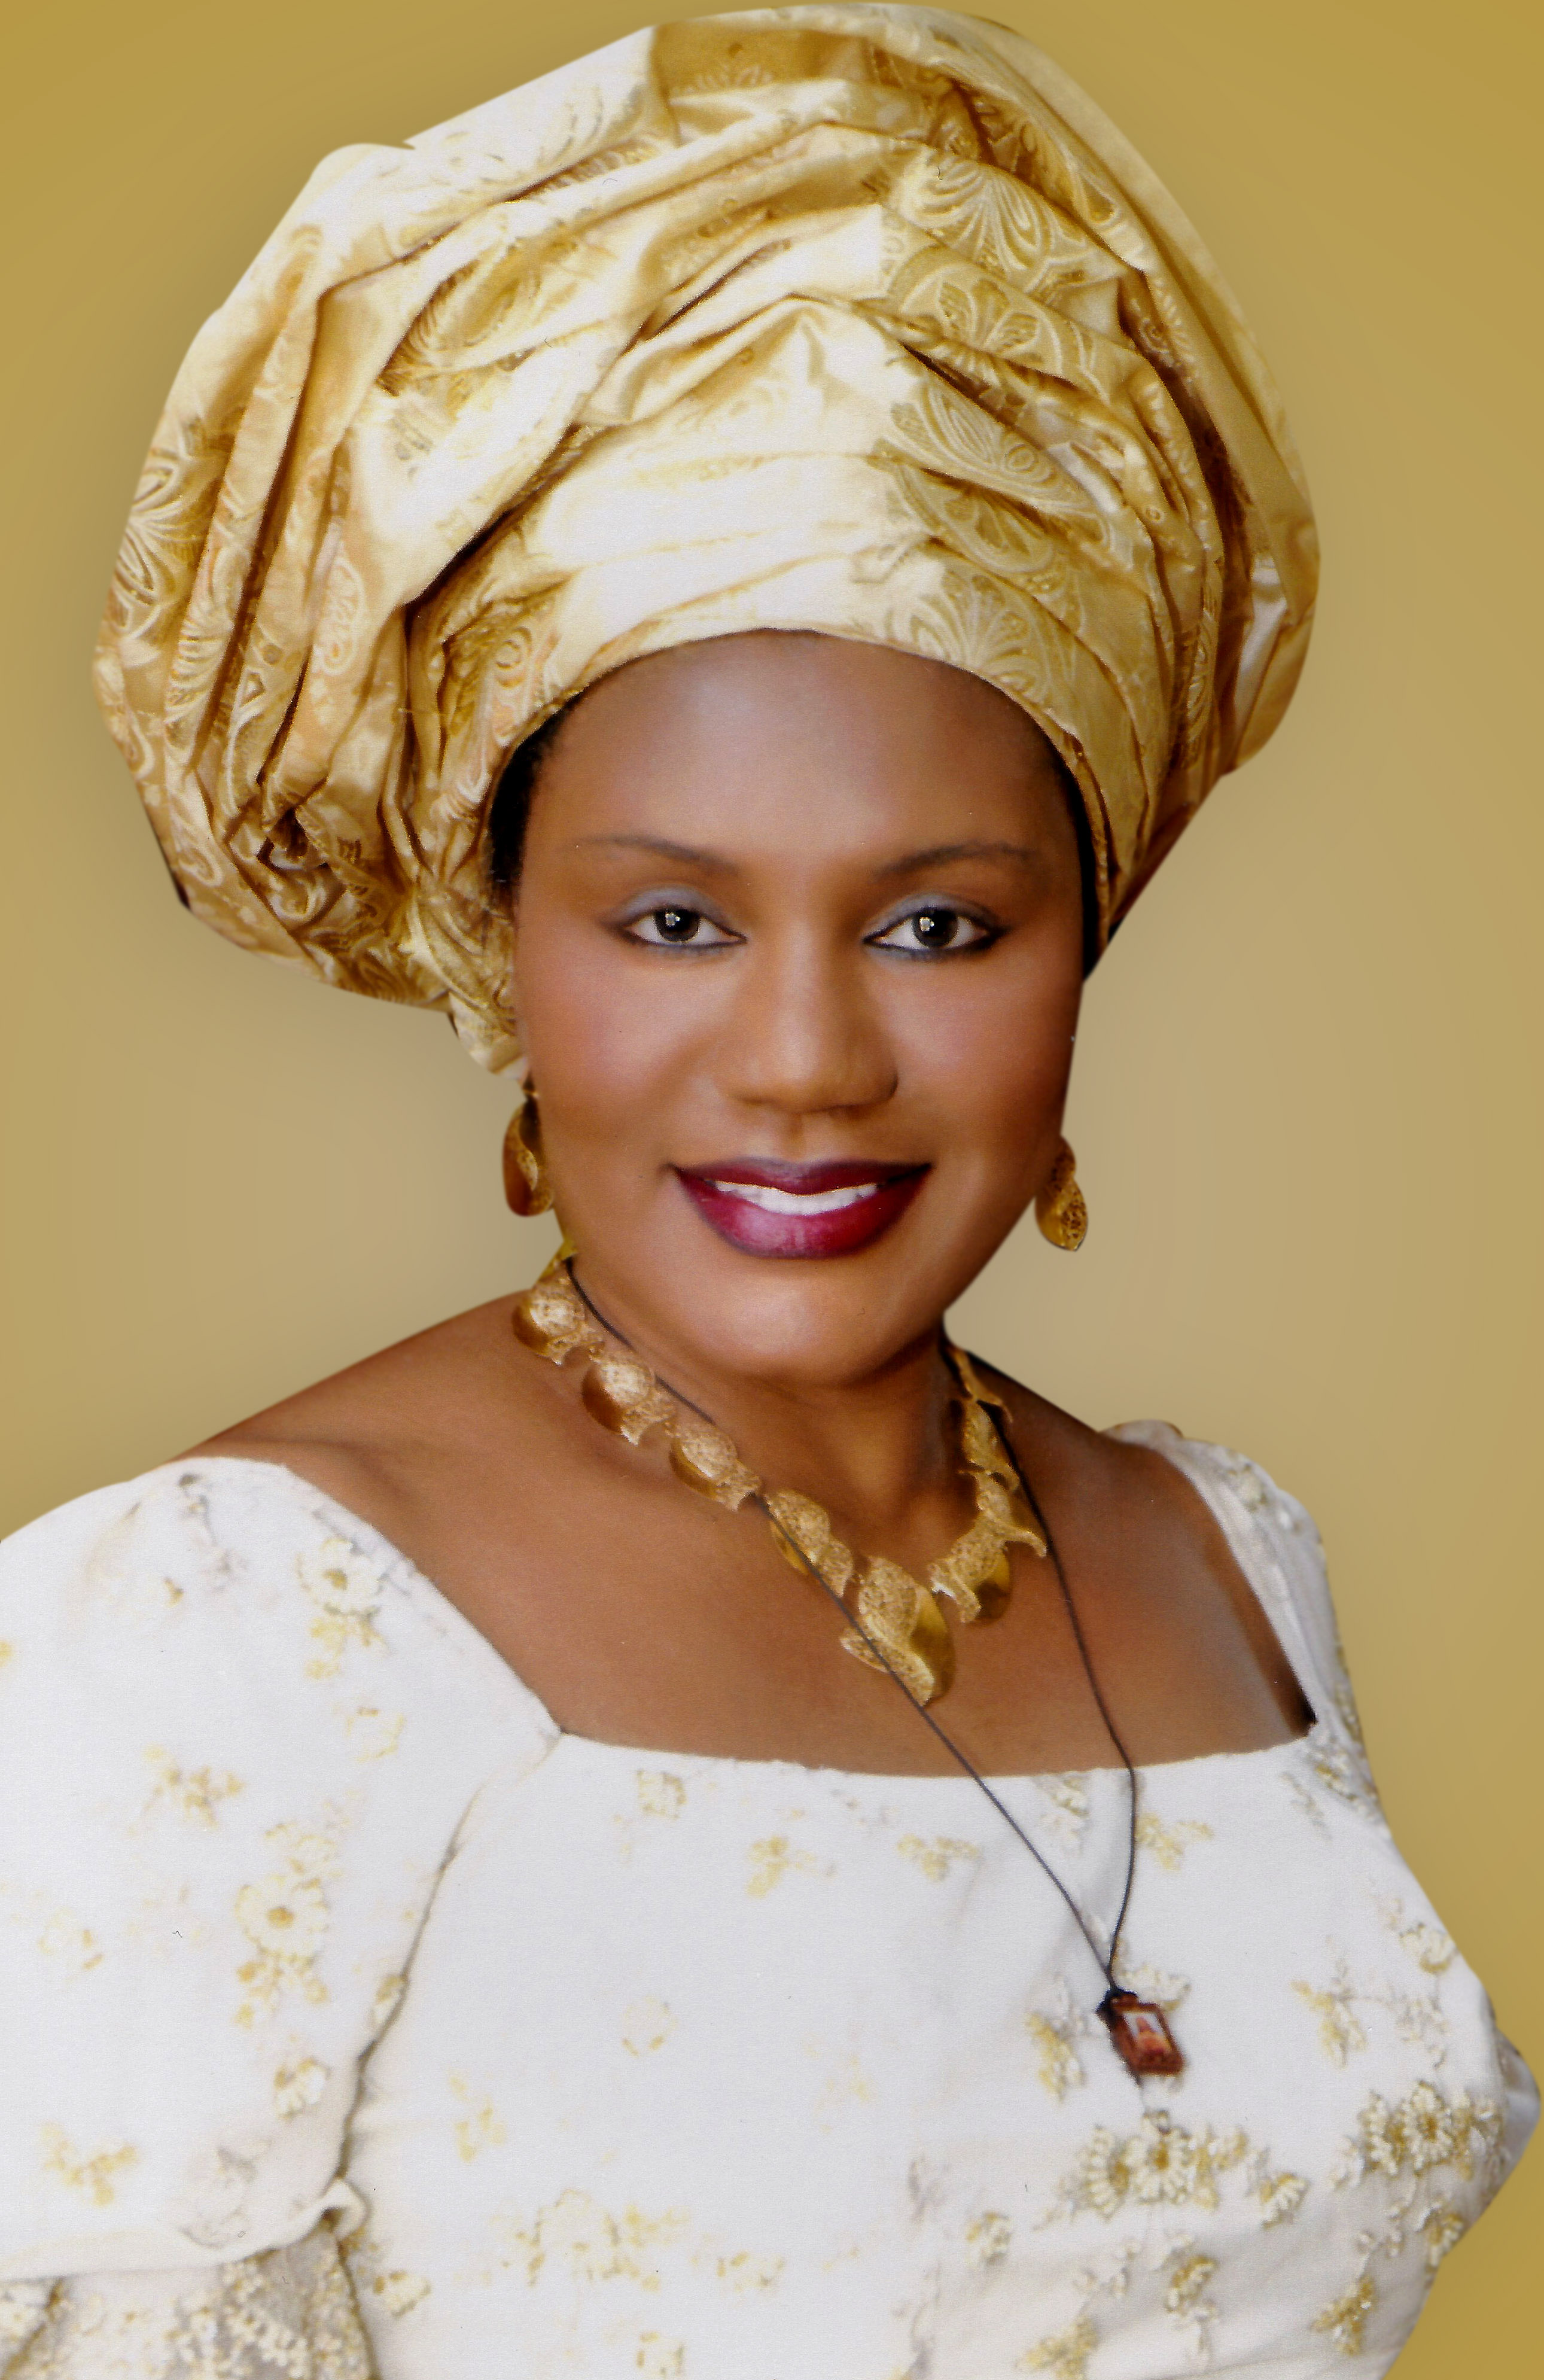 Women's Day: Mrs. Obiano Lauds Anambra Women for Industry, Hard Work